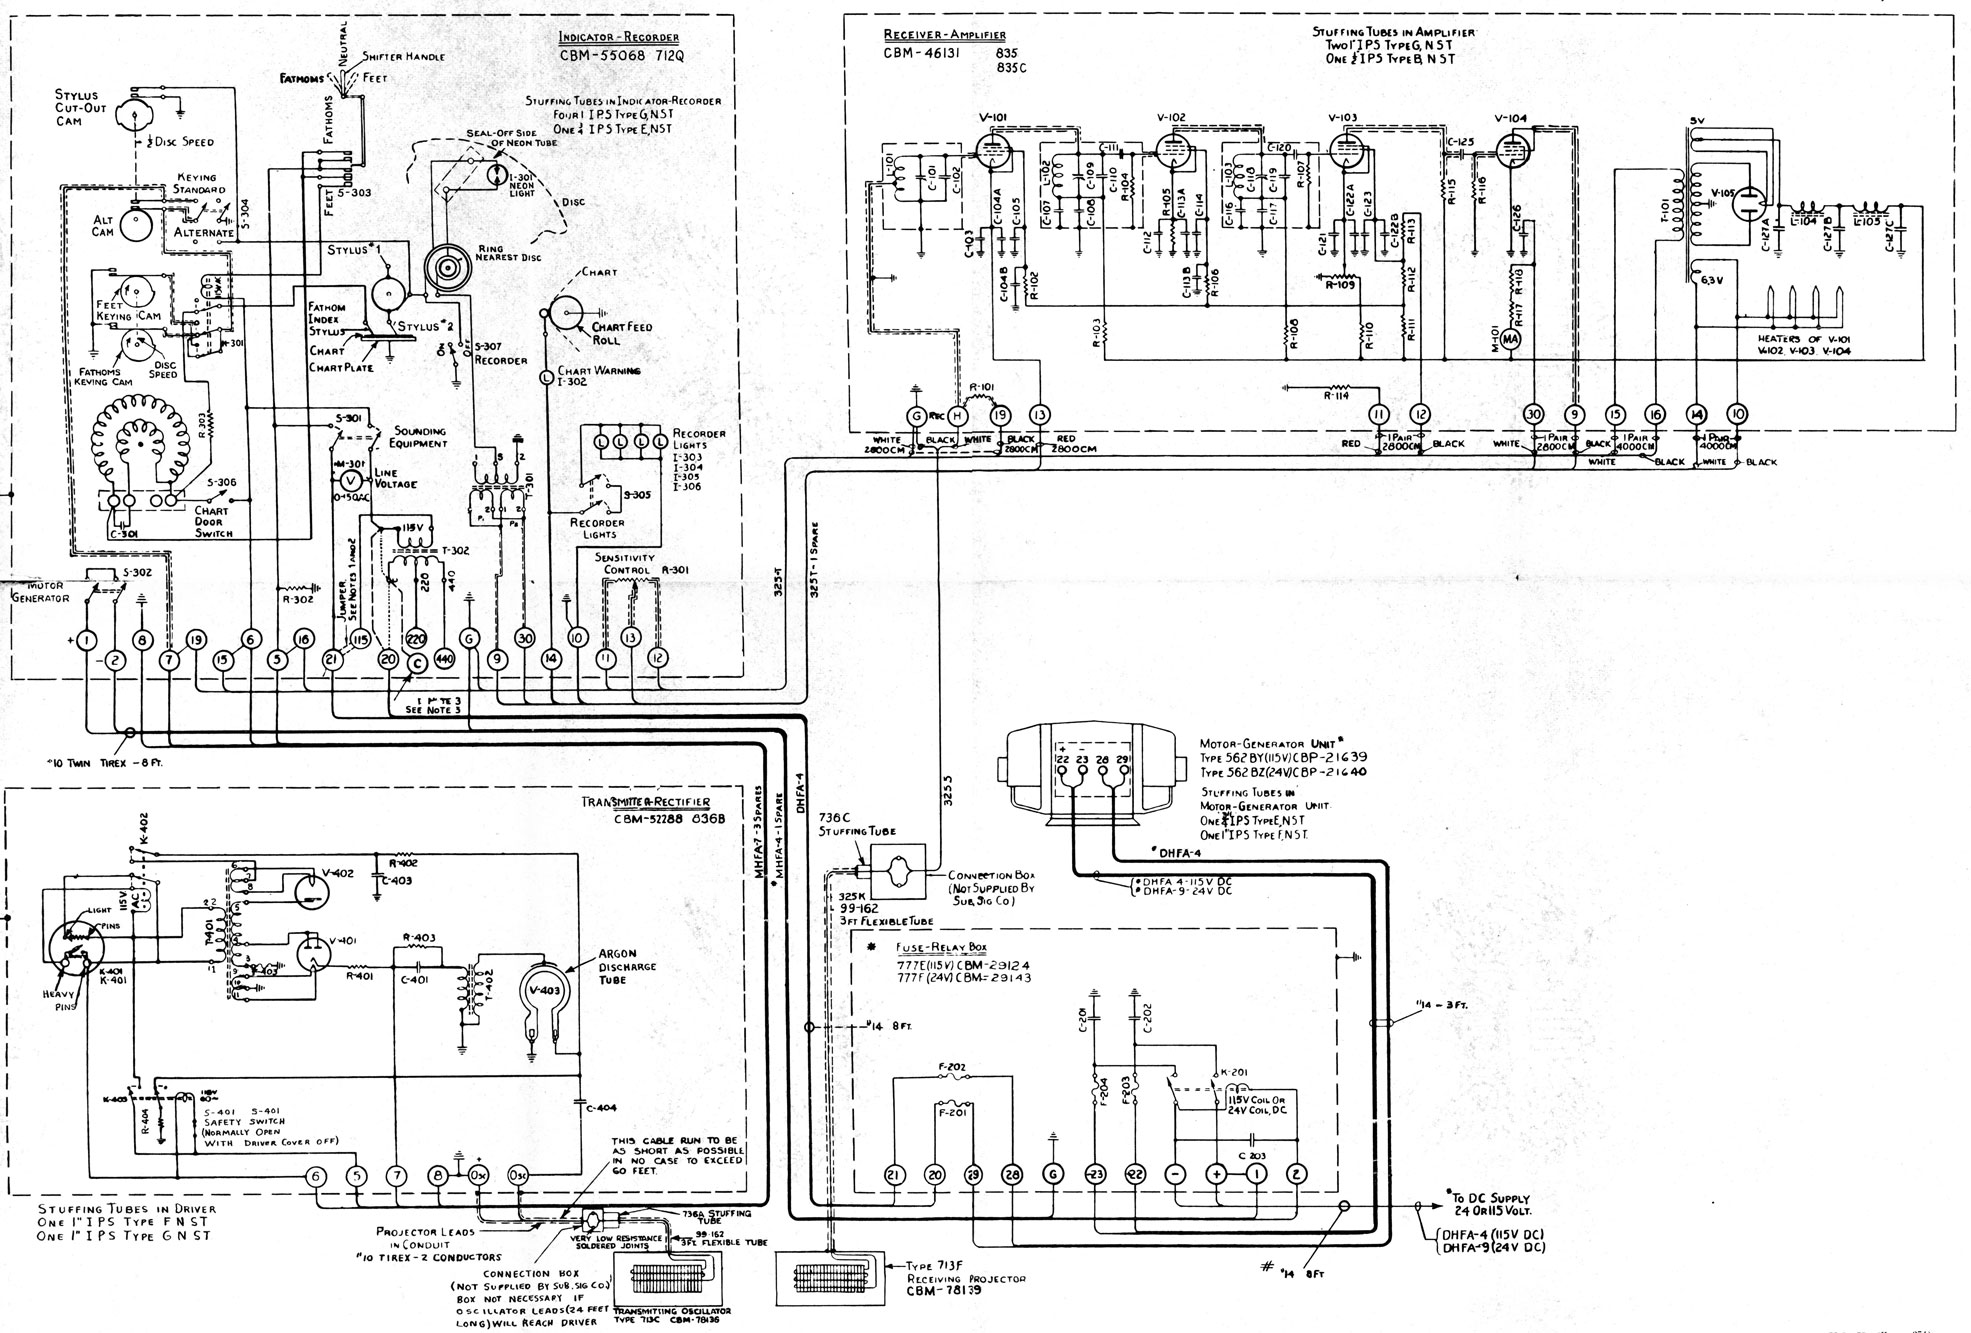 sonar wiring diagrams wiring diagram expertssonar wiring diagrams wiring diagram gp naval sonar figure 15 6 schematic wiring diagram of the